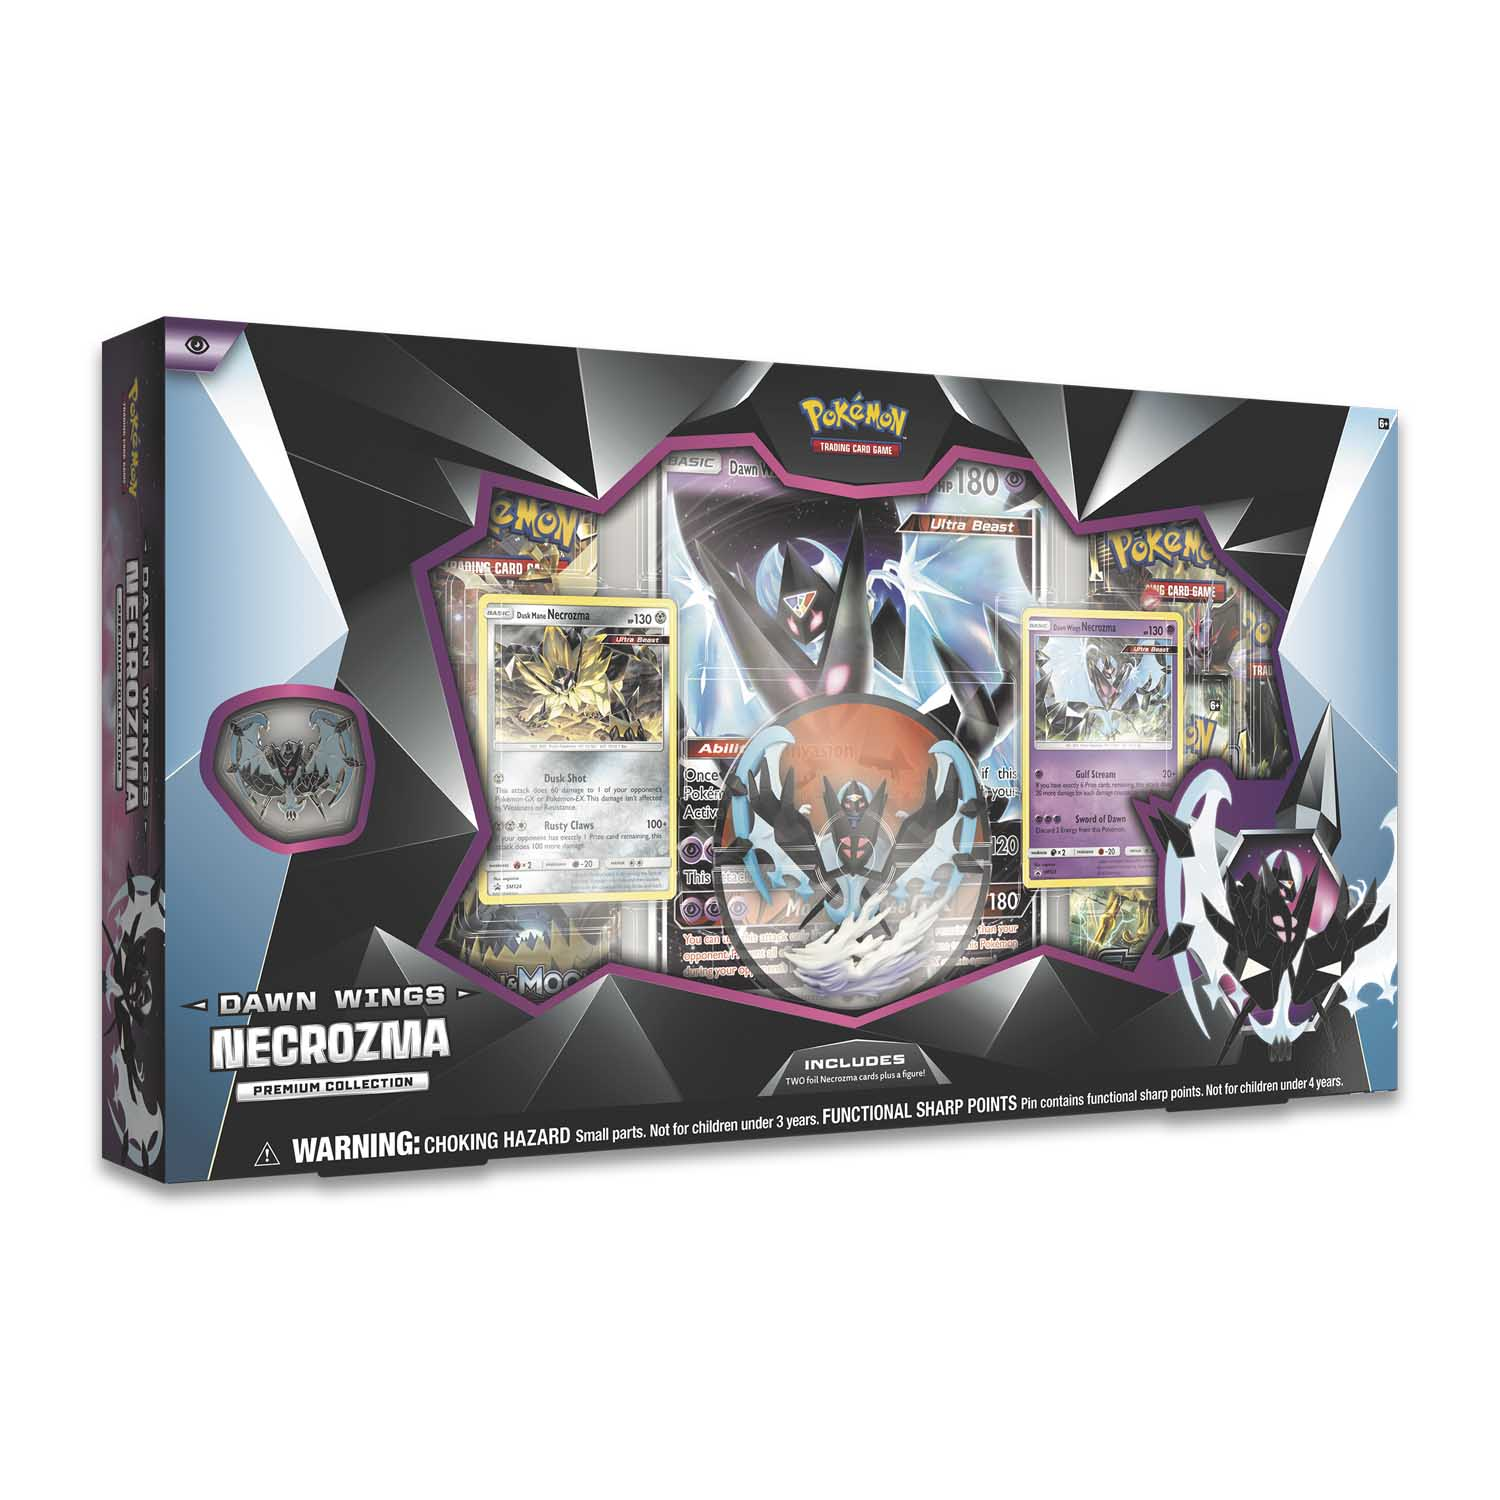 Dawn Wings Necrozma Premium Collection